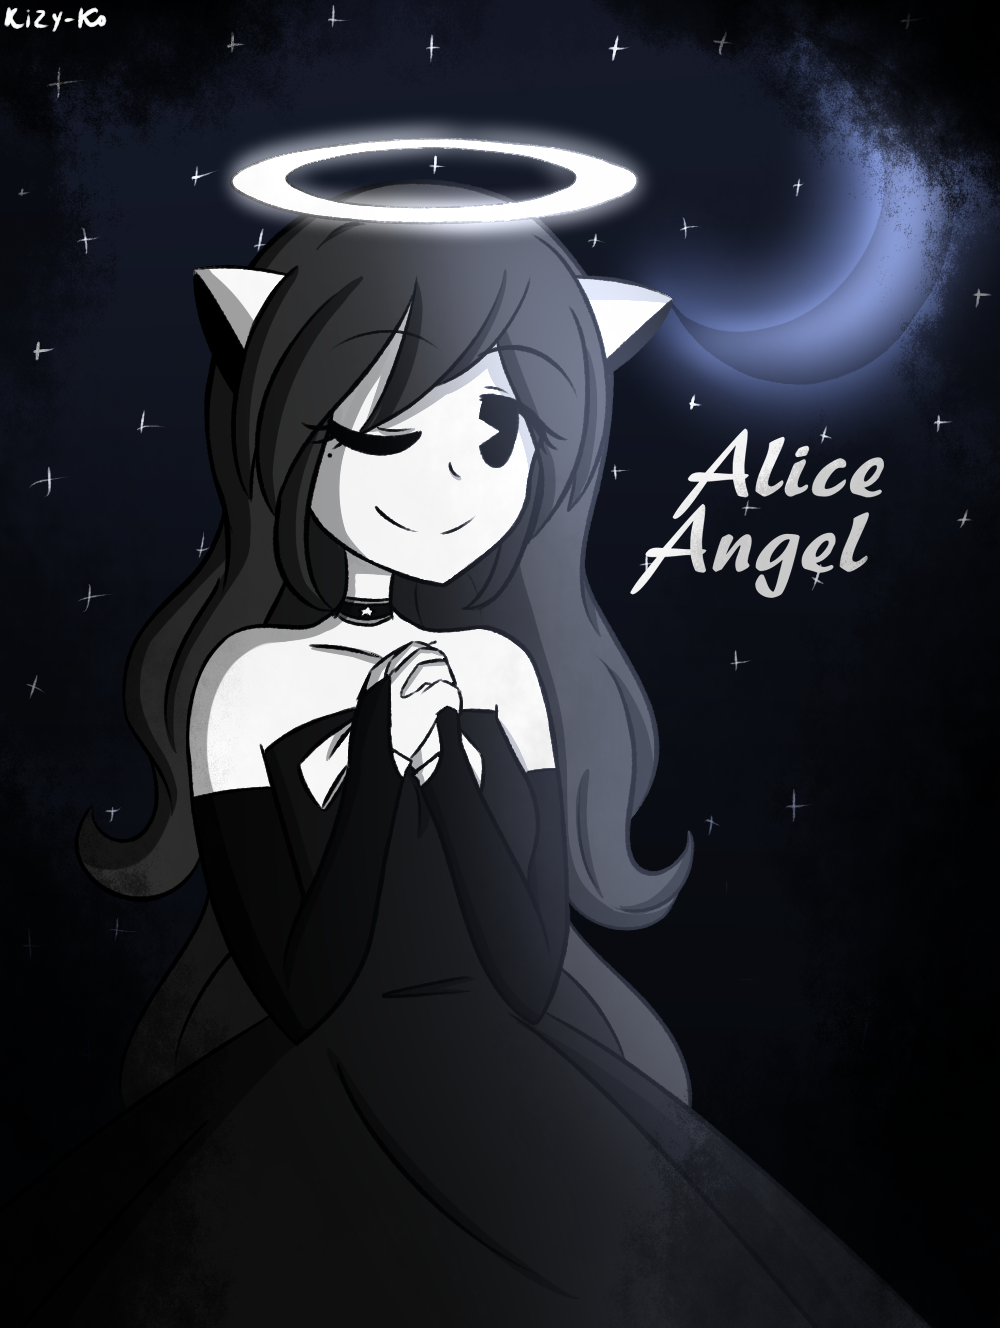 Pin by Andromeda on Alice | Alice angel, Bendy, the ink